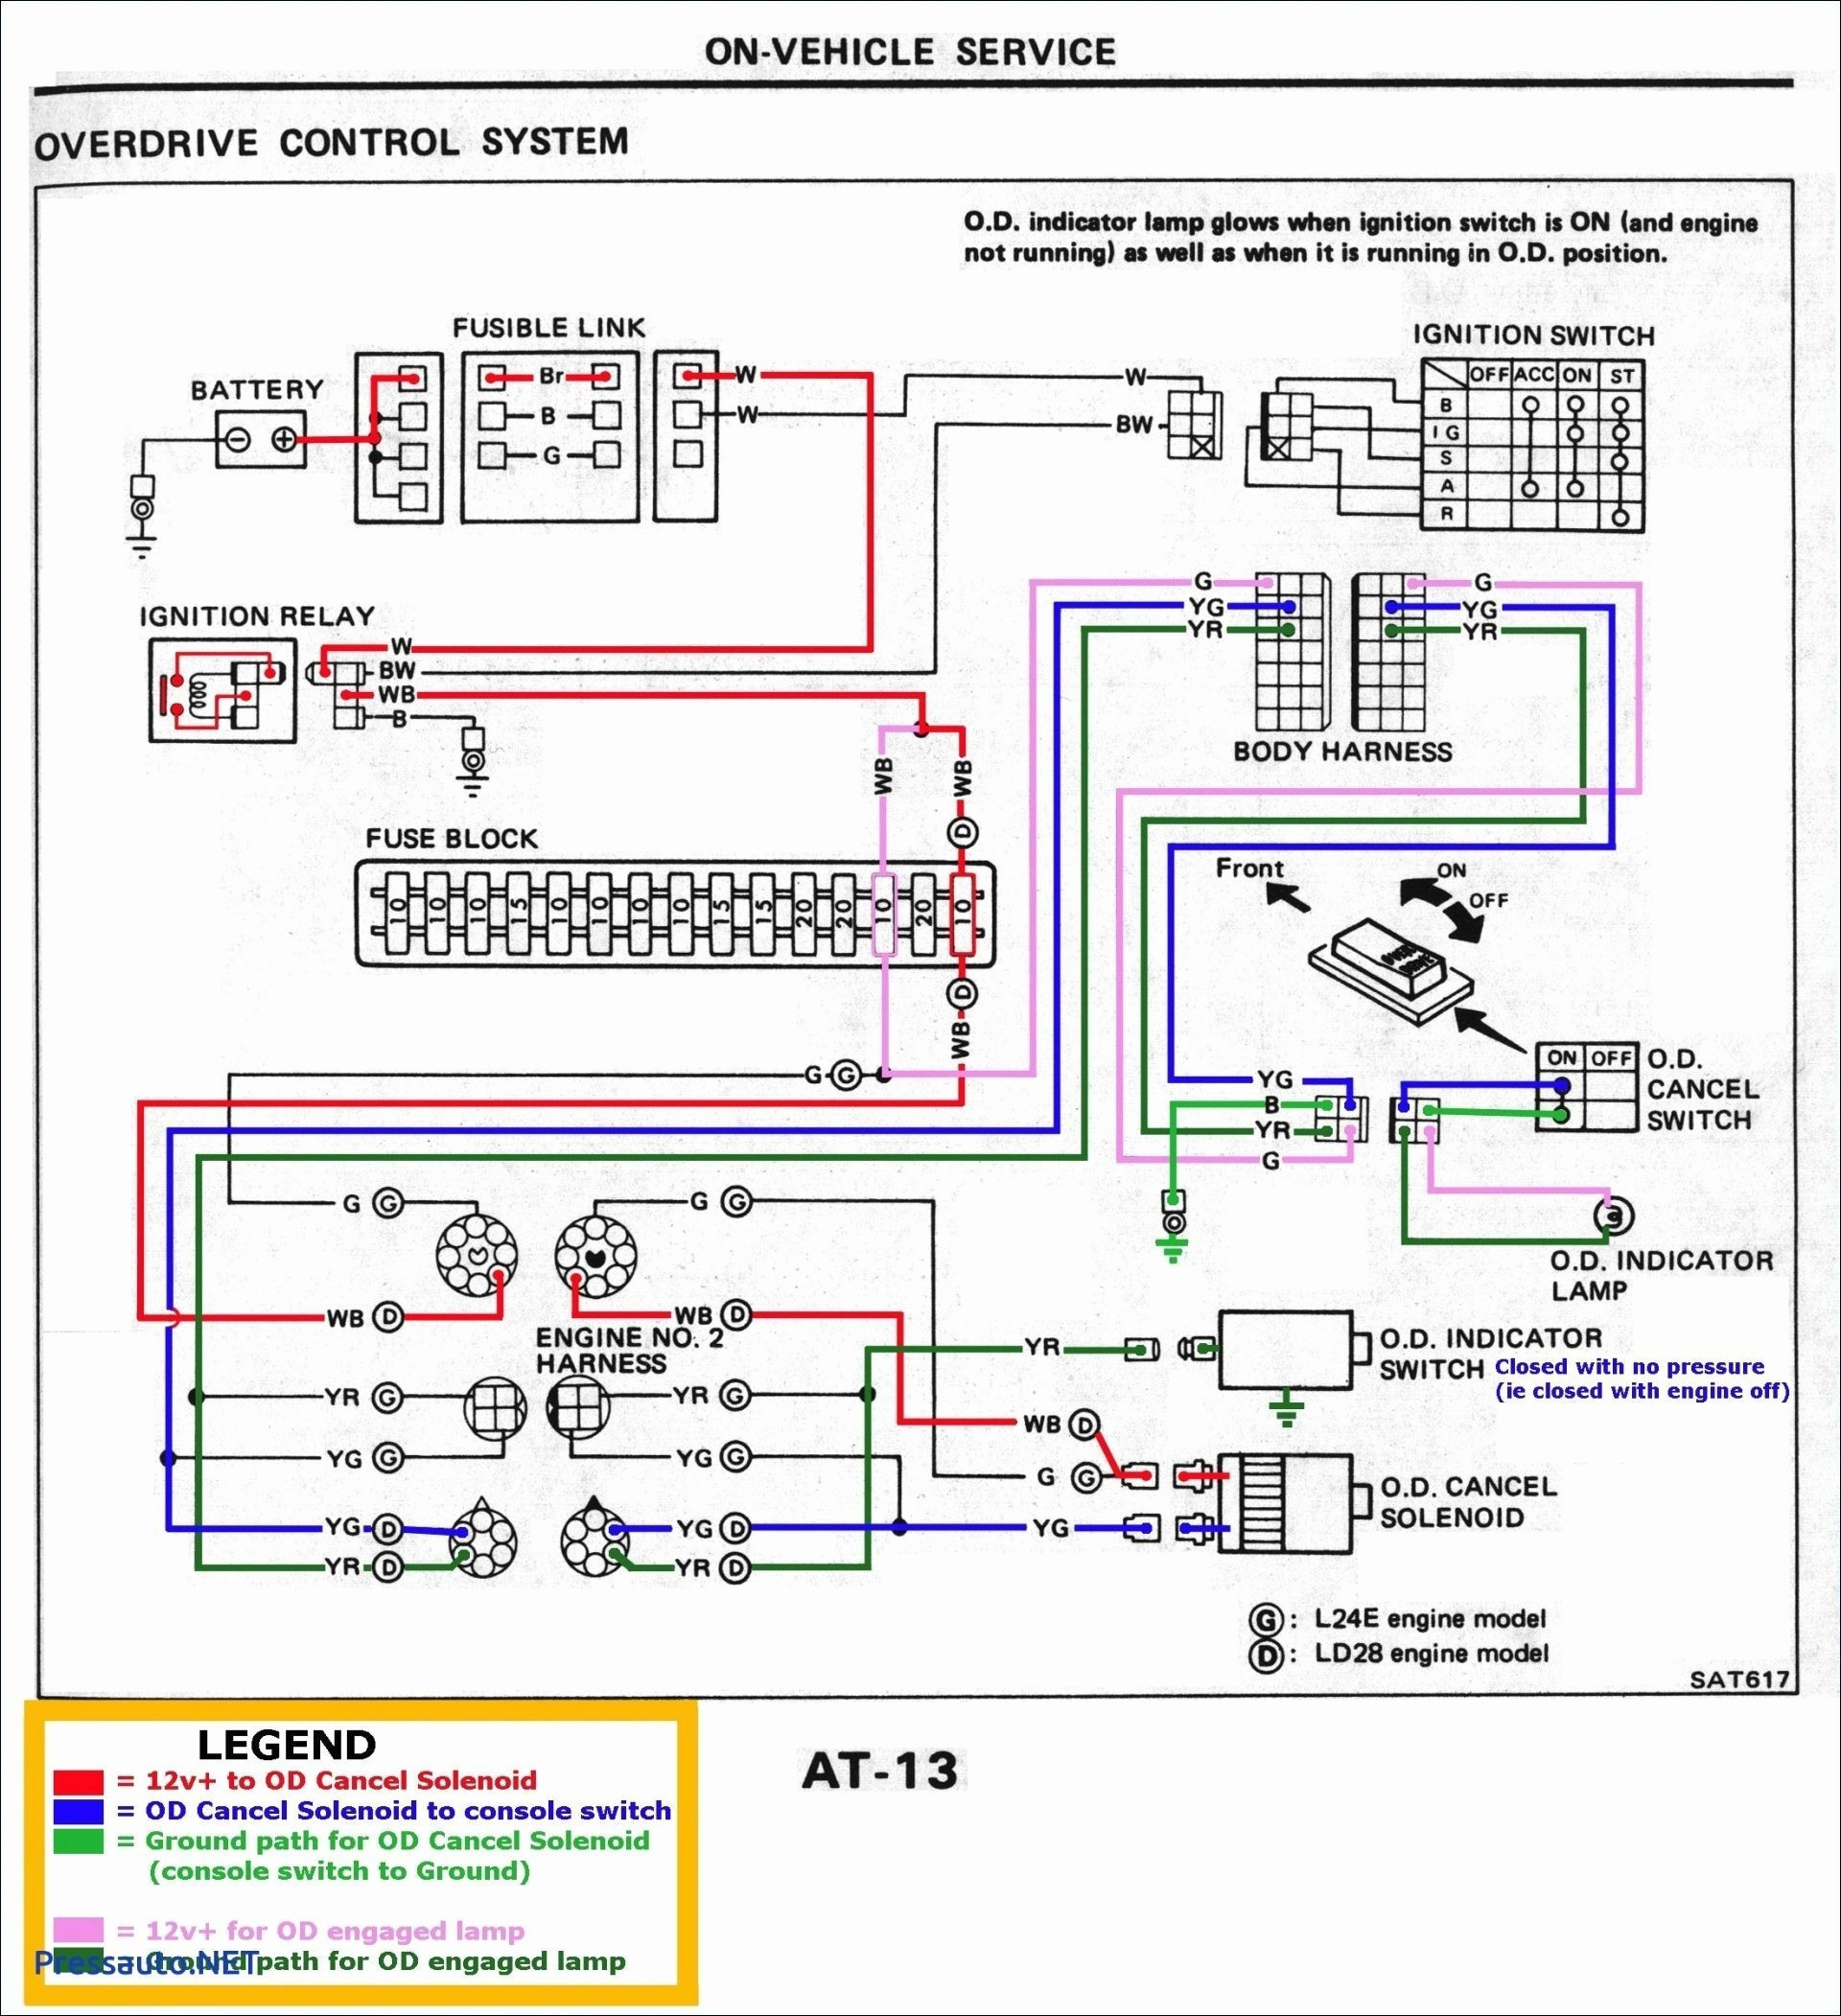 Gas Pump Diagram Gas Furnace Wiring Diagram Valid Best Suburban Gas Furnace Wiring Of Gas Pump Diagram Hvac Transformer Wiring Diagram Save Ac Transformer Wiring Diagram